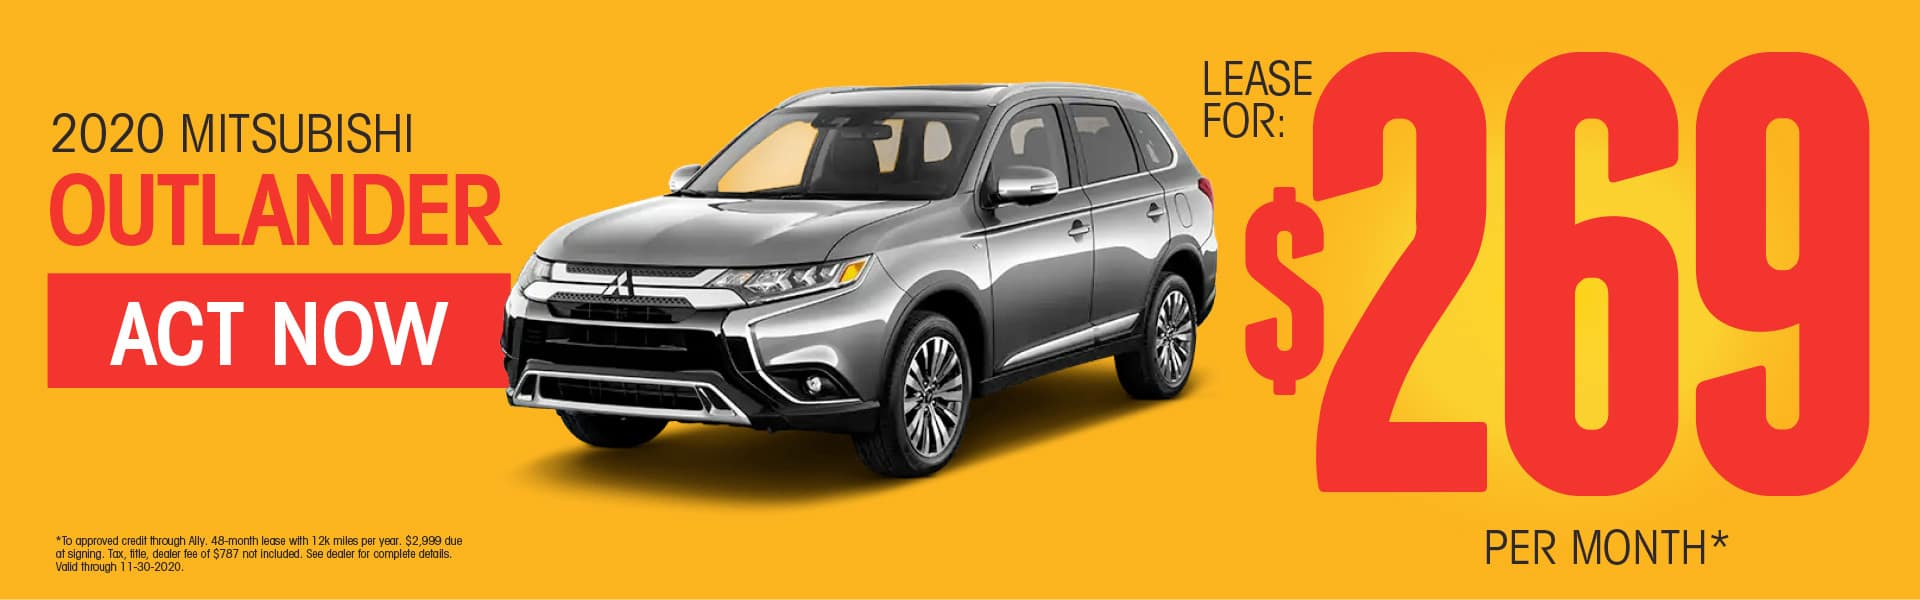 2020 Mitsubishi Outlander Lease for $269 per month* SHOP NOW